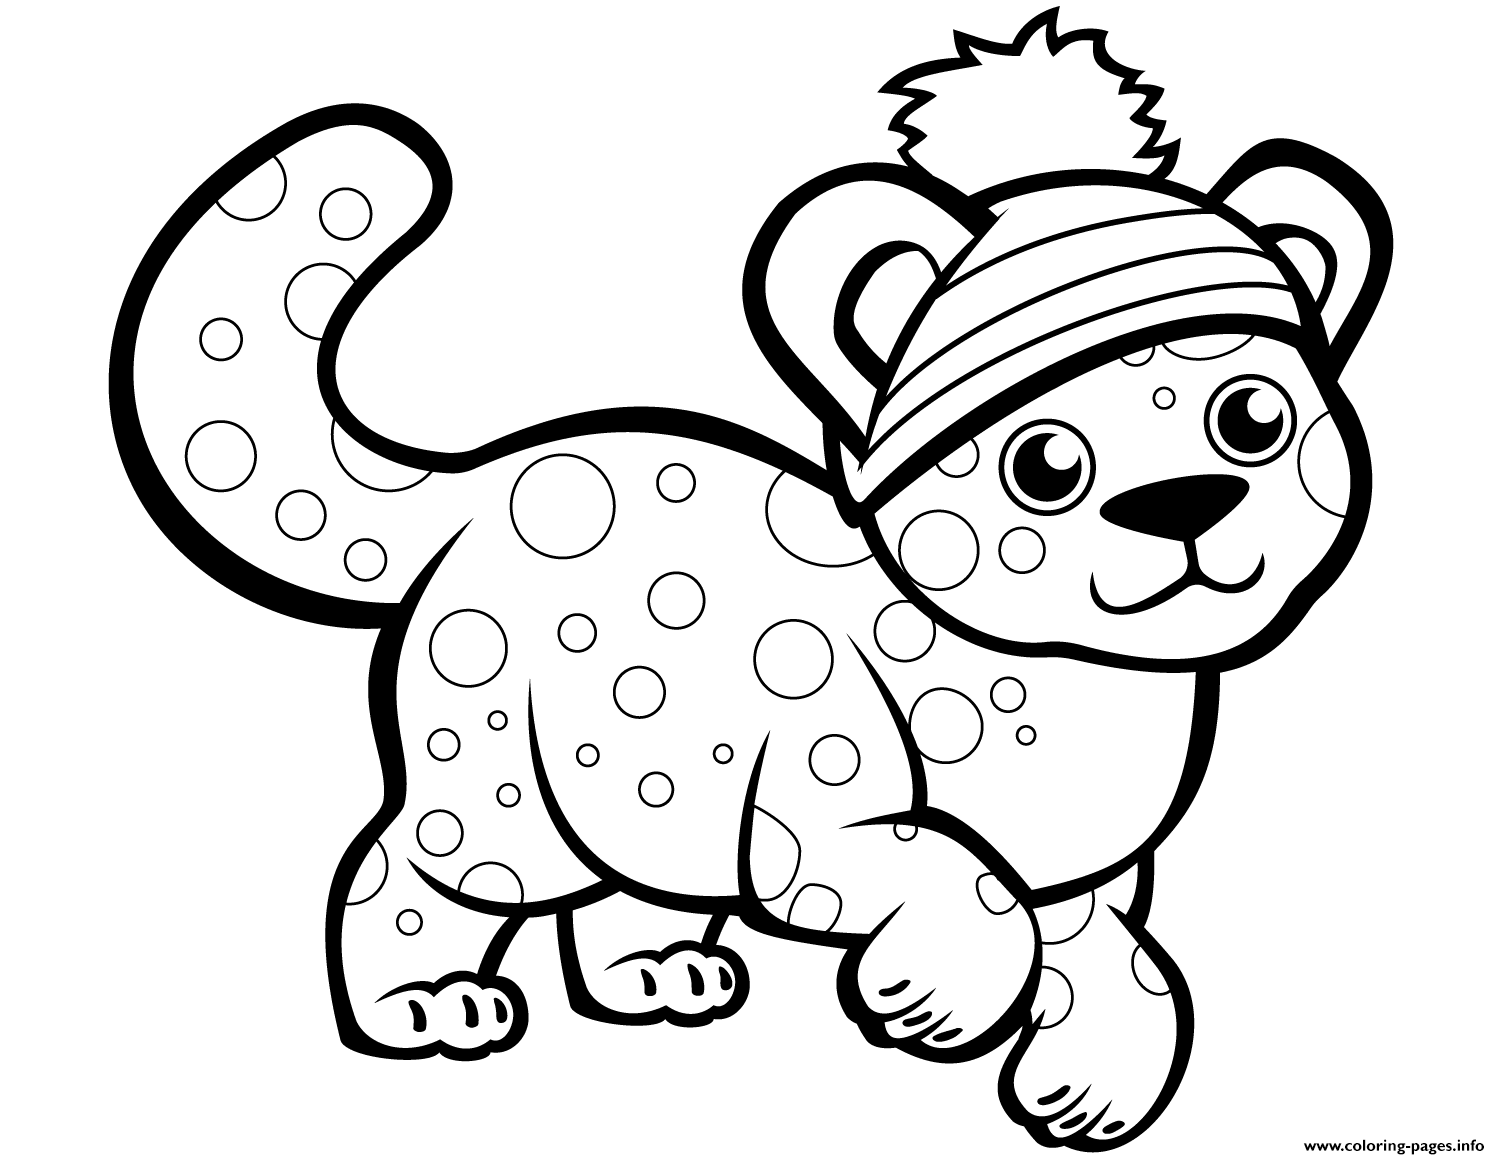 cute k coloring pages cute cheetah in winter hat coloring pages printable coloring pages k cute